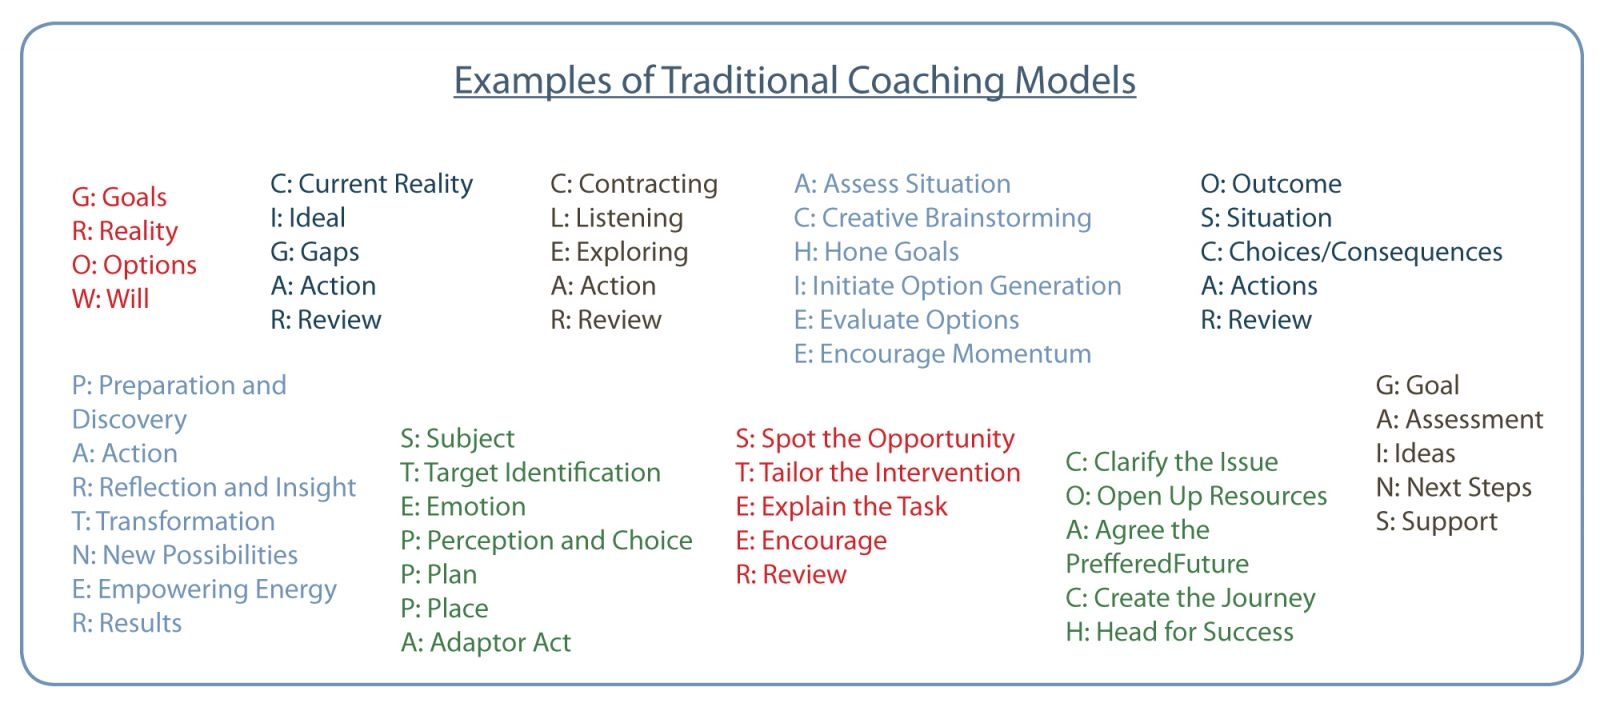 Examples of Traditional Coaching Models